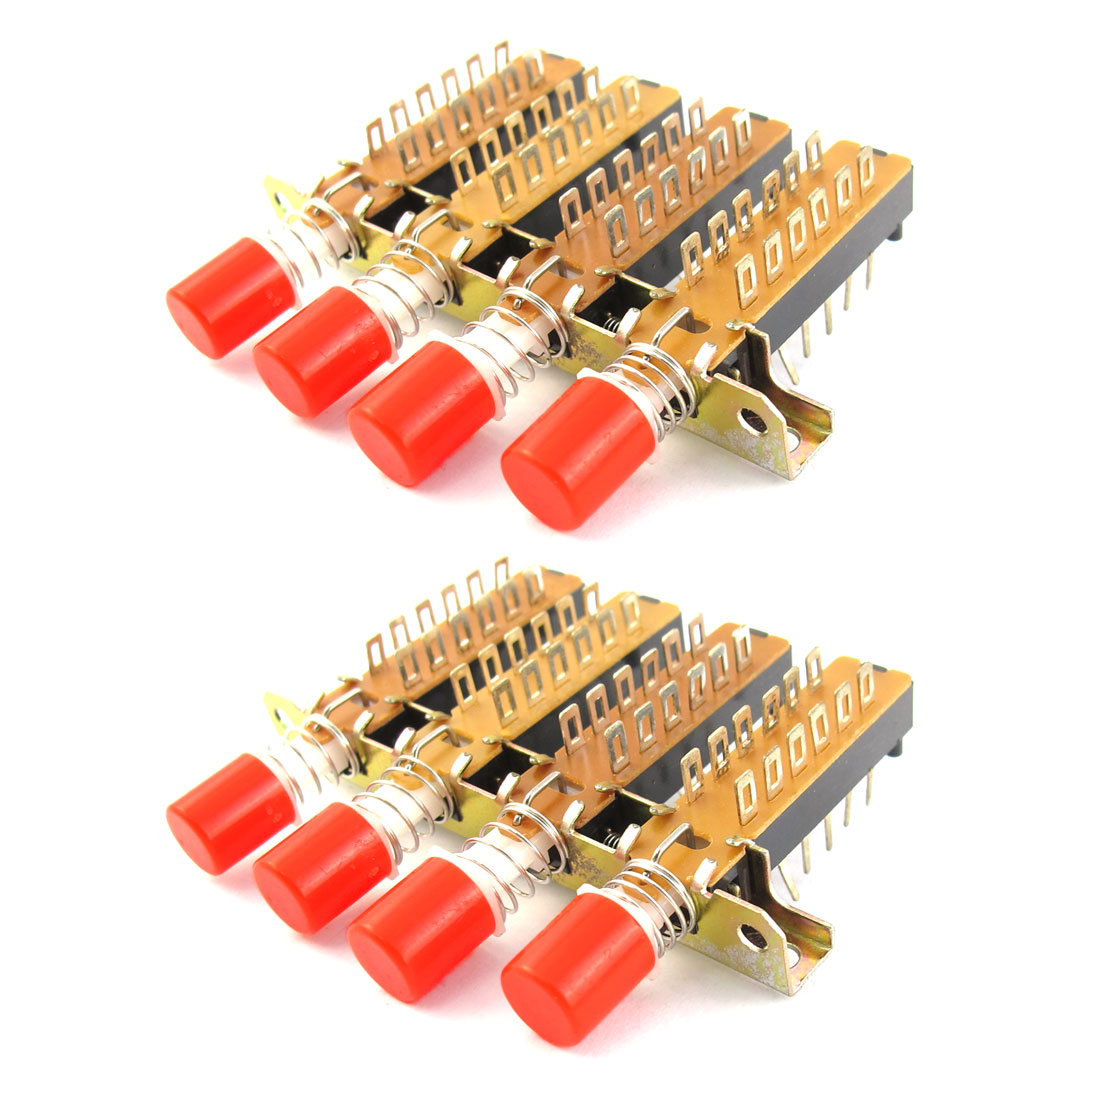 4P2T 4 Rows Interlock Push Button Knob Piano Key Switch 2 Pcs